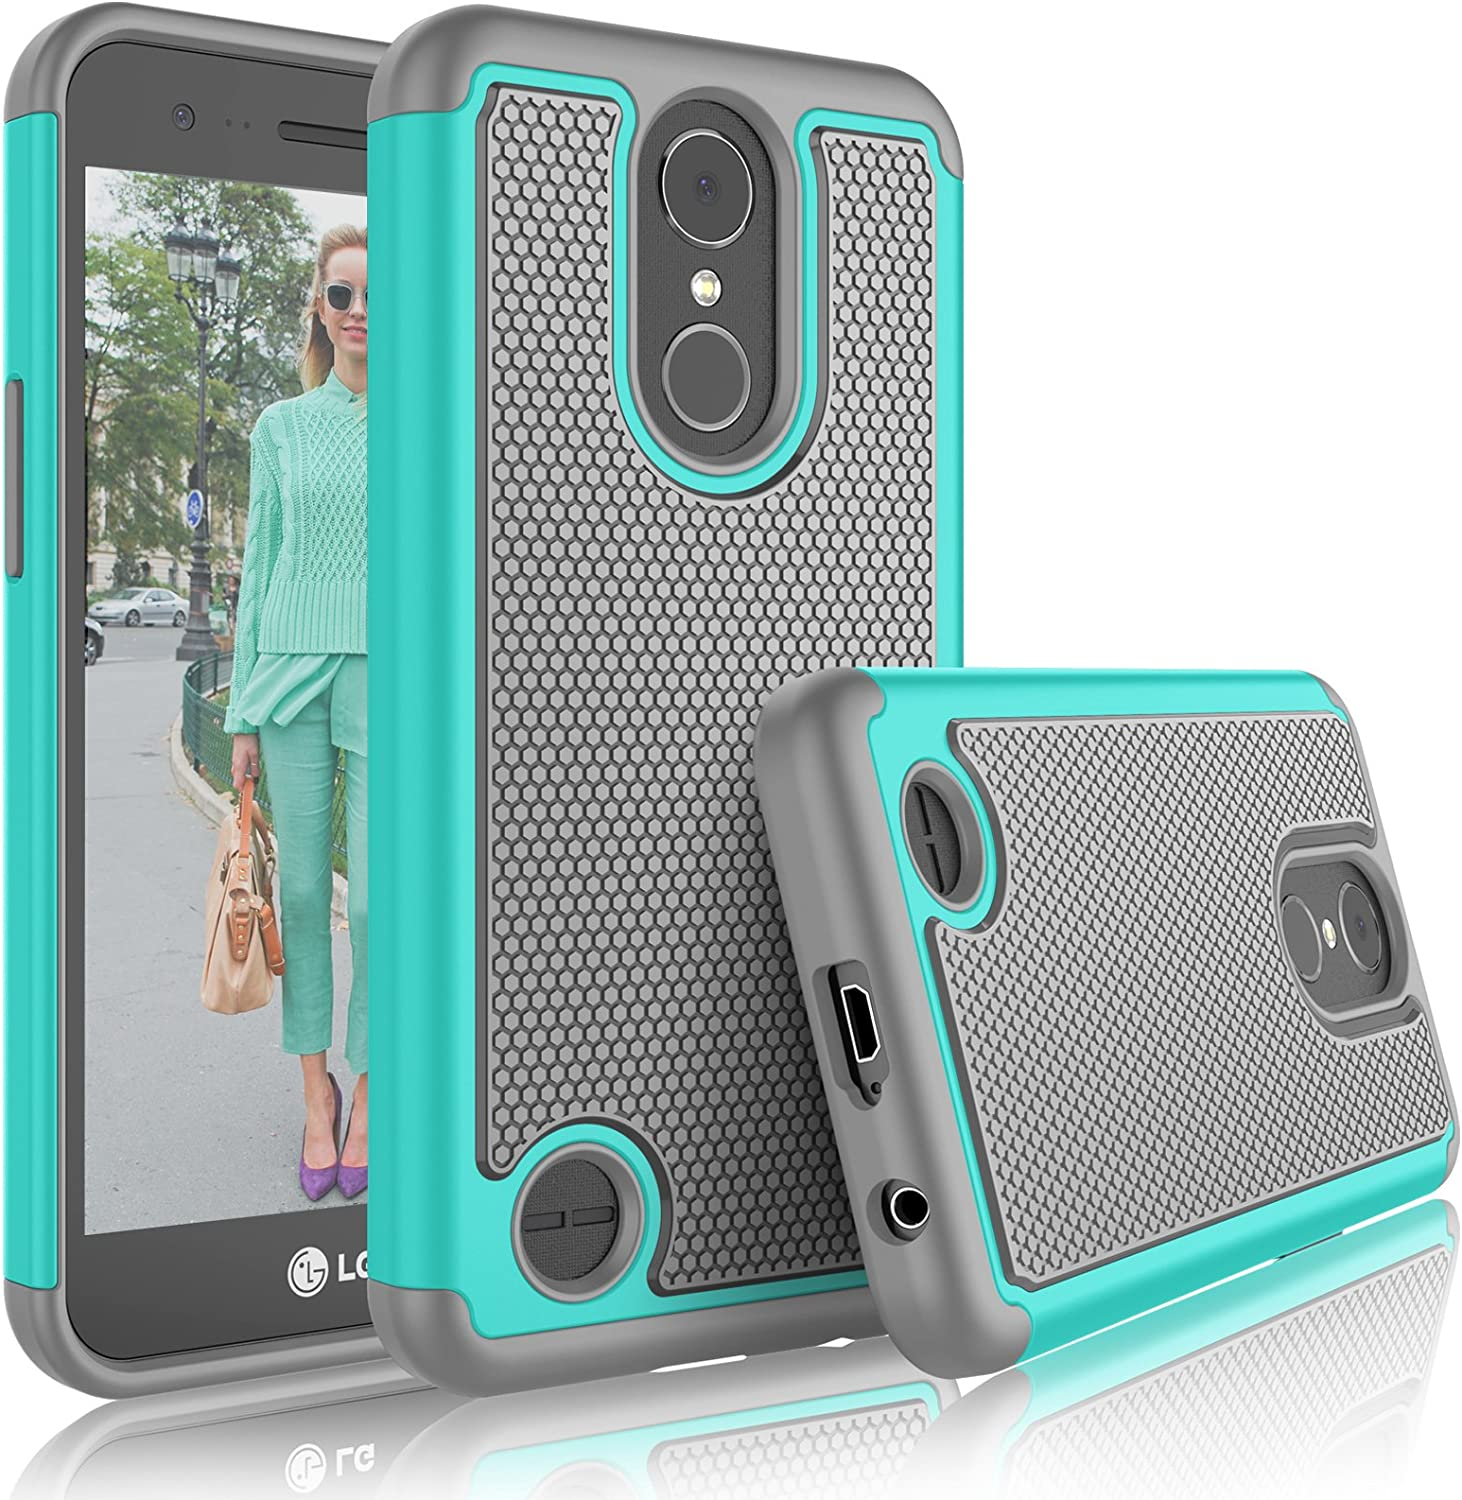 Tekcoo LG K20 V/LG K20 Plus Case, Tekcoo LG Harmony/V5/K10 2017 Cute Case, [Tmajor] Shock Absorbing [Turquoise] Rubber Plastic Scratch Resistant Defender Bumper Rugged Slim Grip Hard Cover Cases